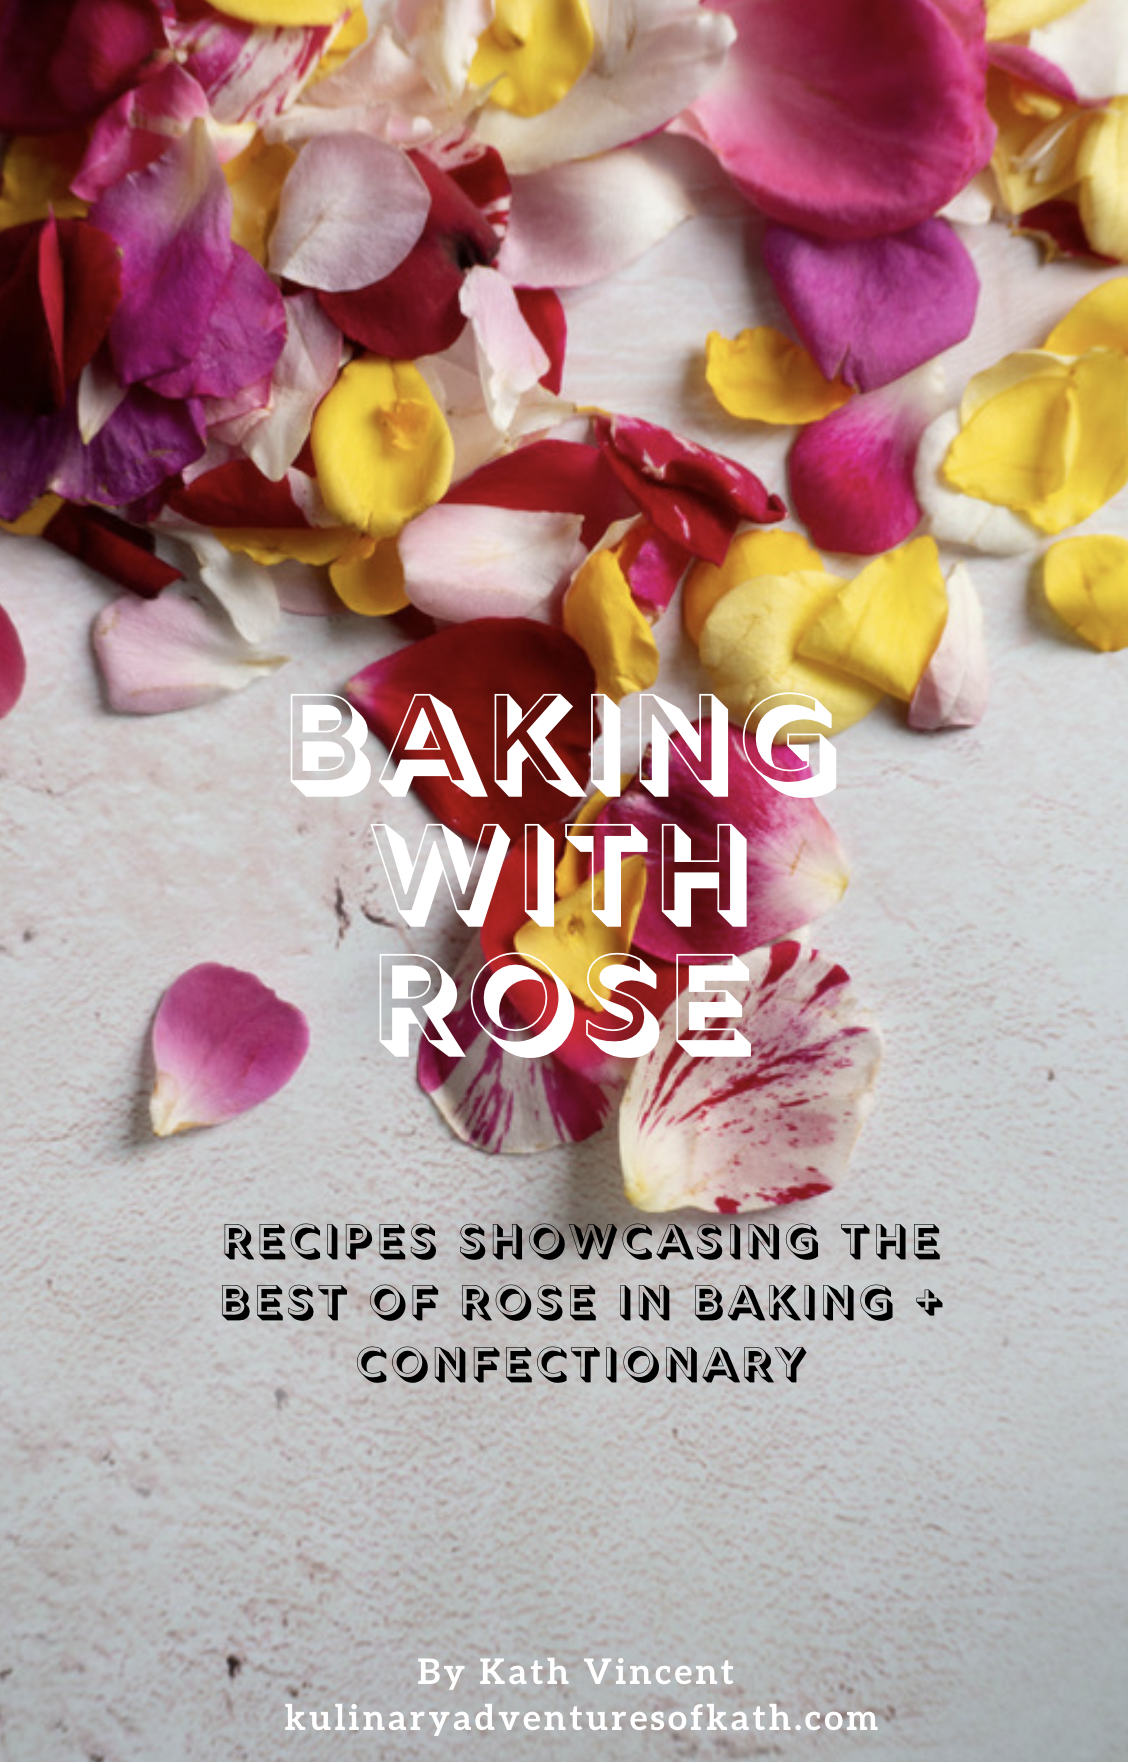 Baking with Rose eBook